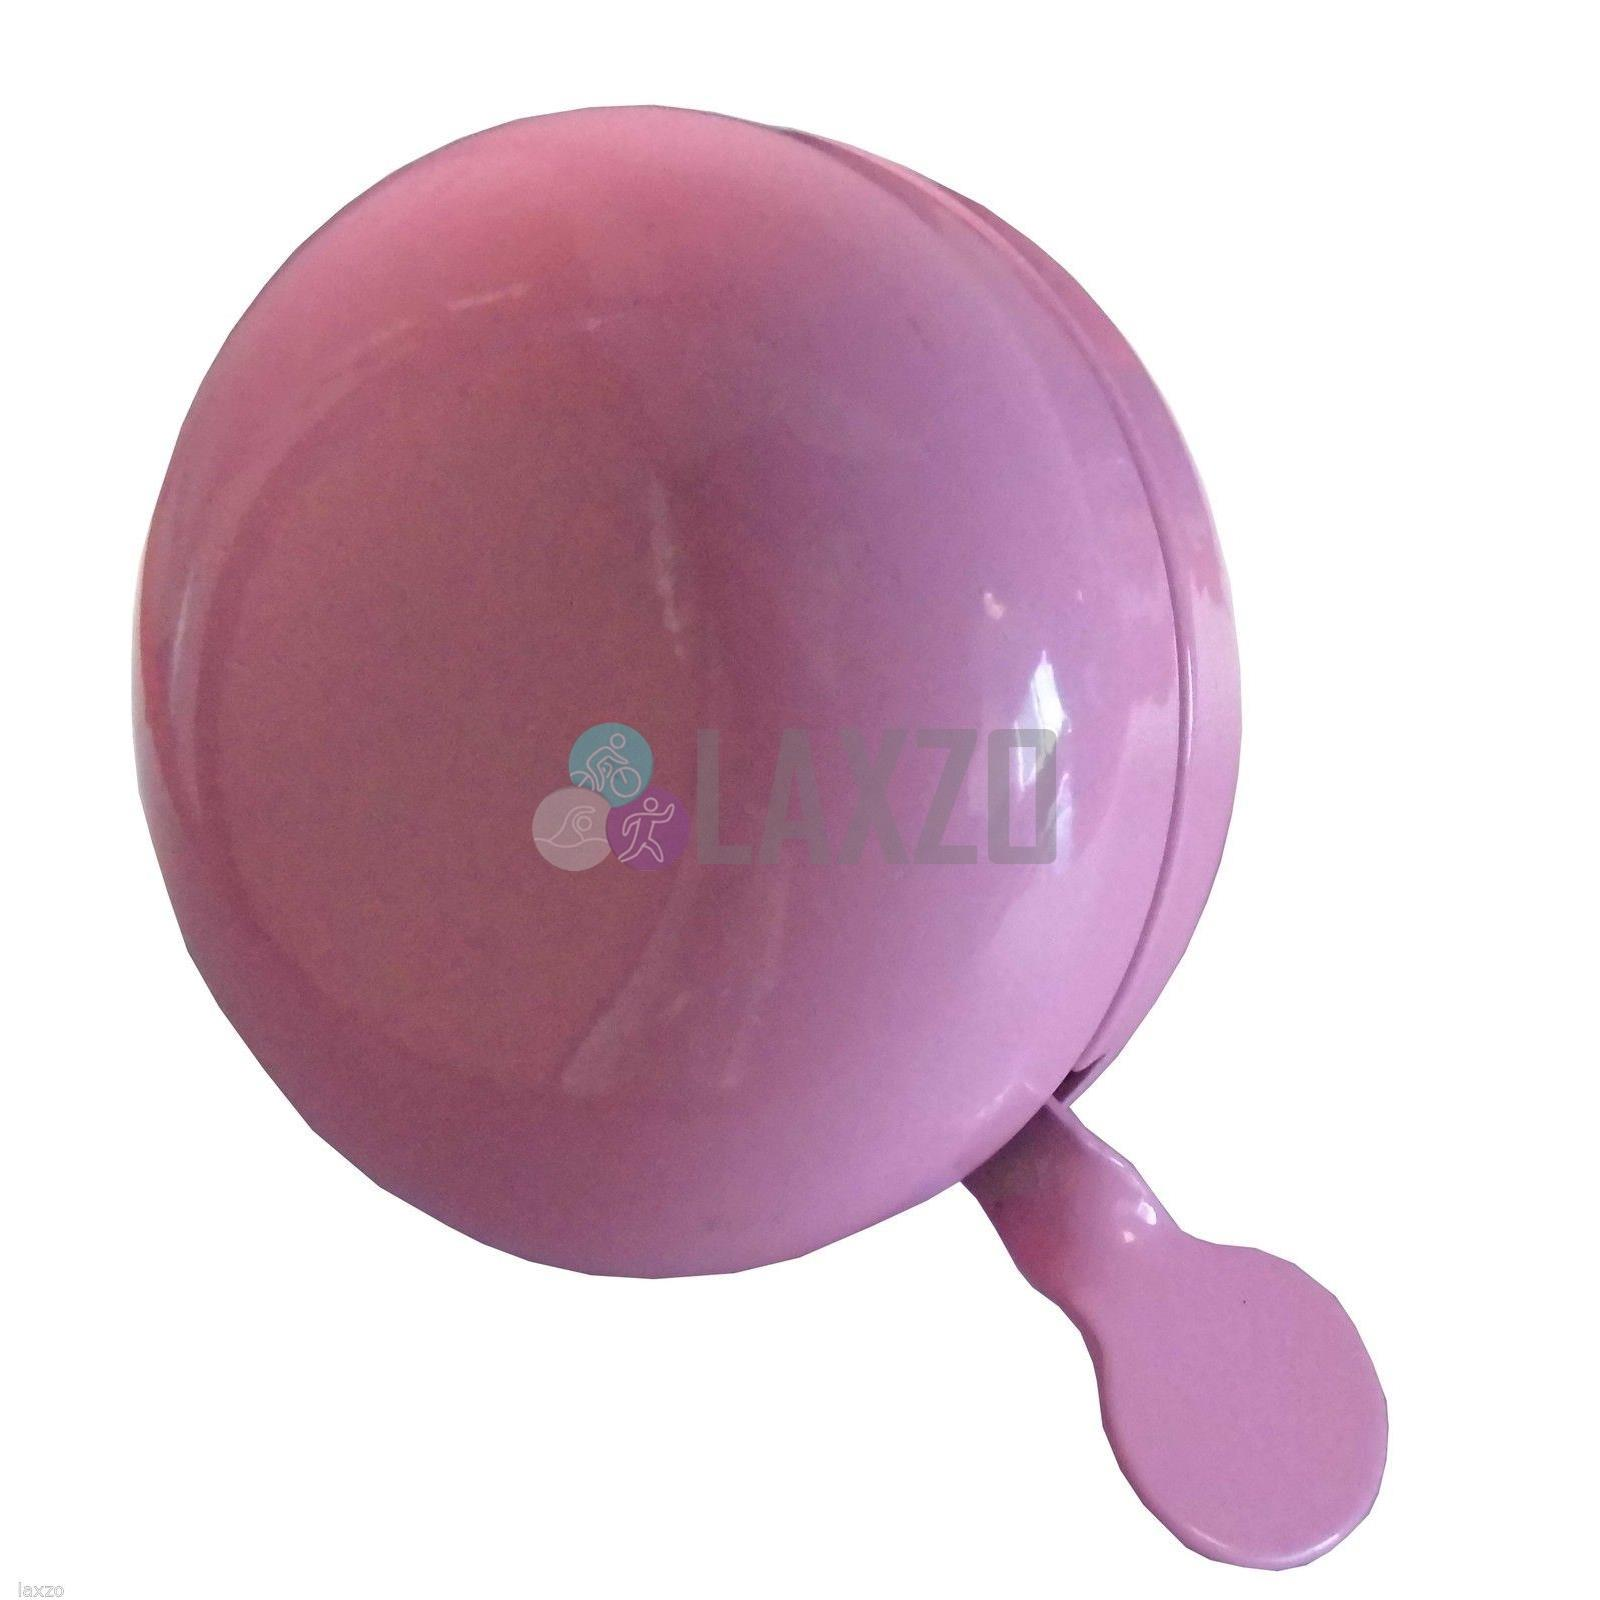 Traditional Large Loud Retro Round Dutch Bicycle Ding Dong Bell Pink